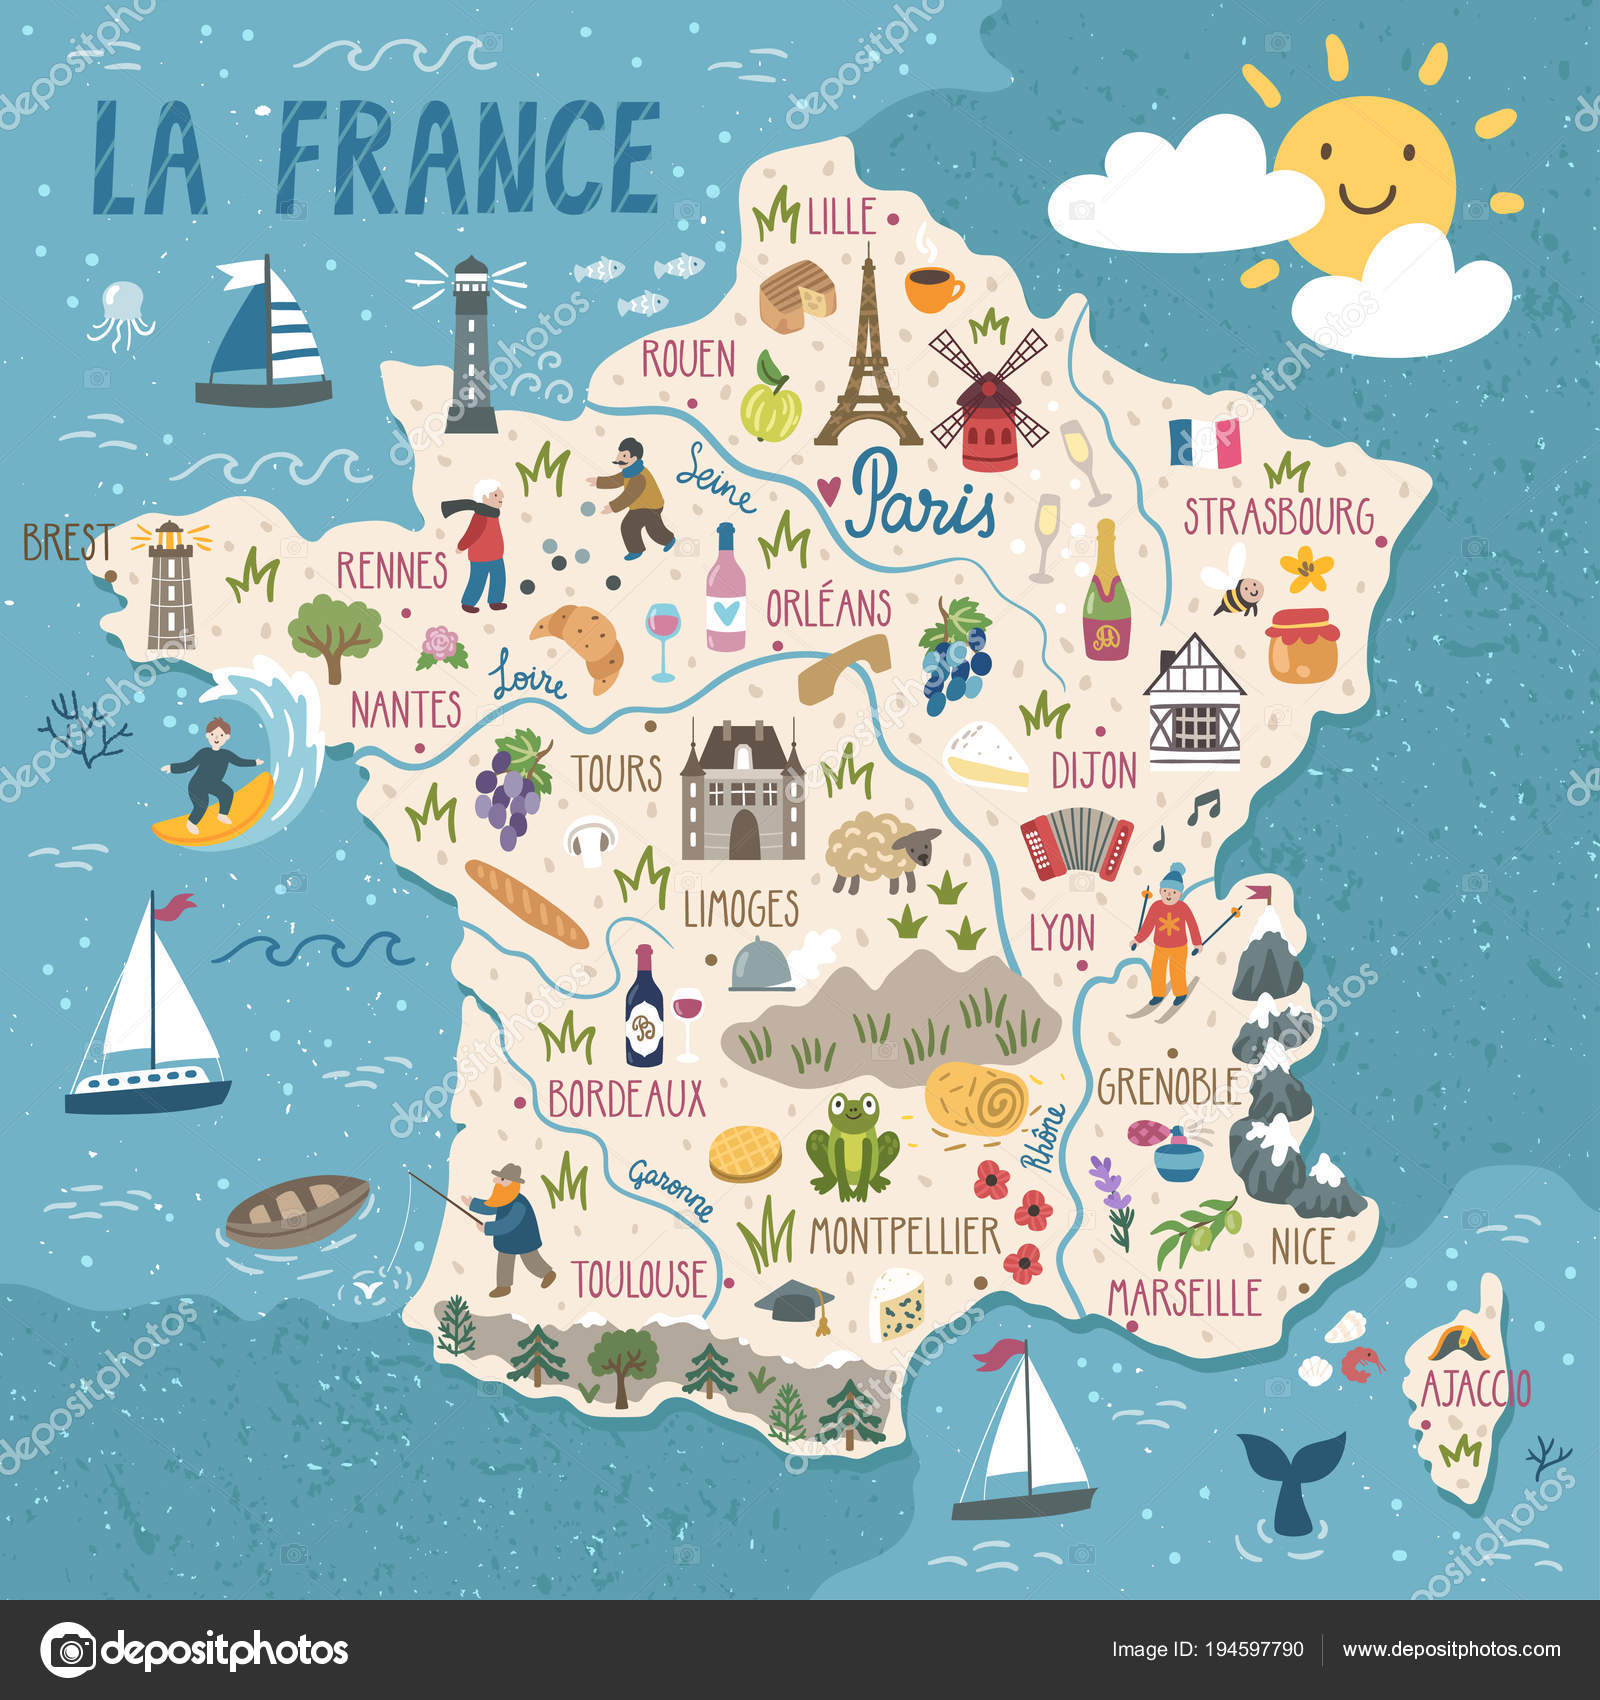 Map Of France In French.Vector Stylized Map Of France Travel Illustration With French